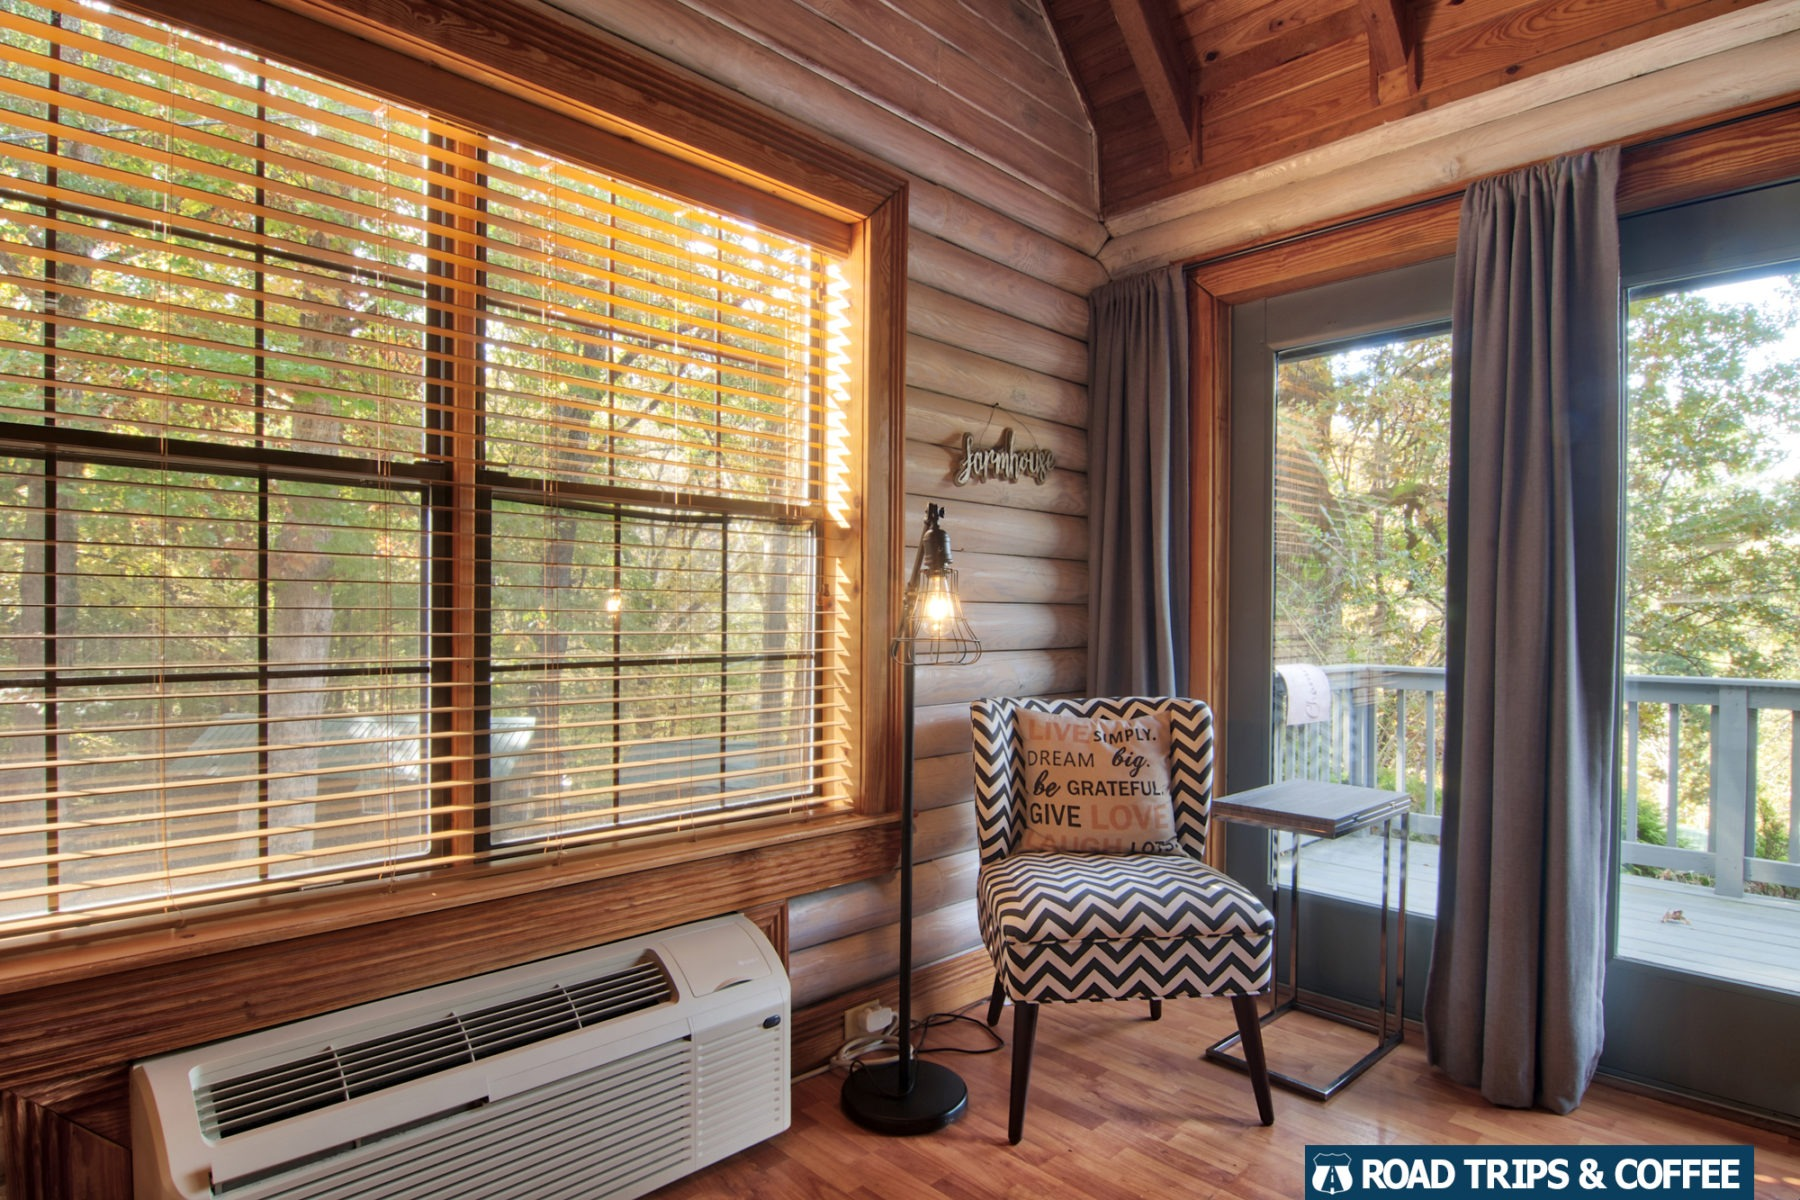 A large window and all-glass front door let in plenty of sunlight at the premiere cabin at Little Arrow Outdoor Resort in Townsend, Tennessee